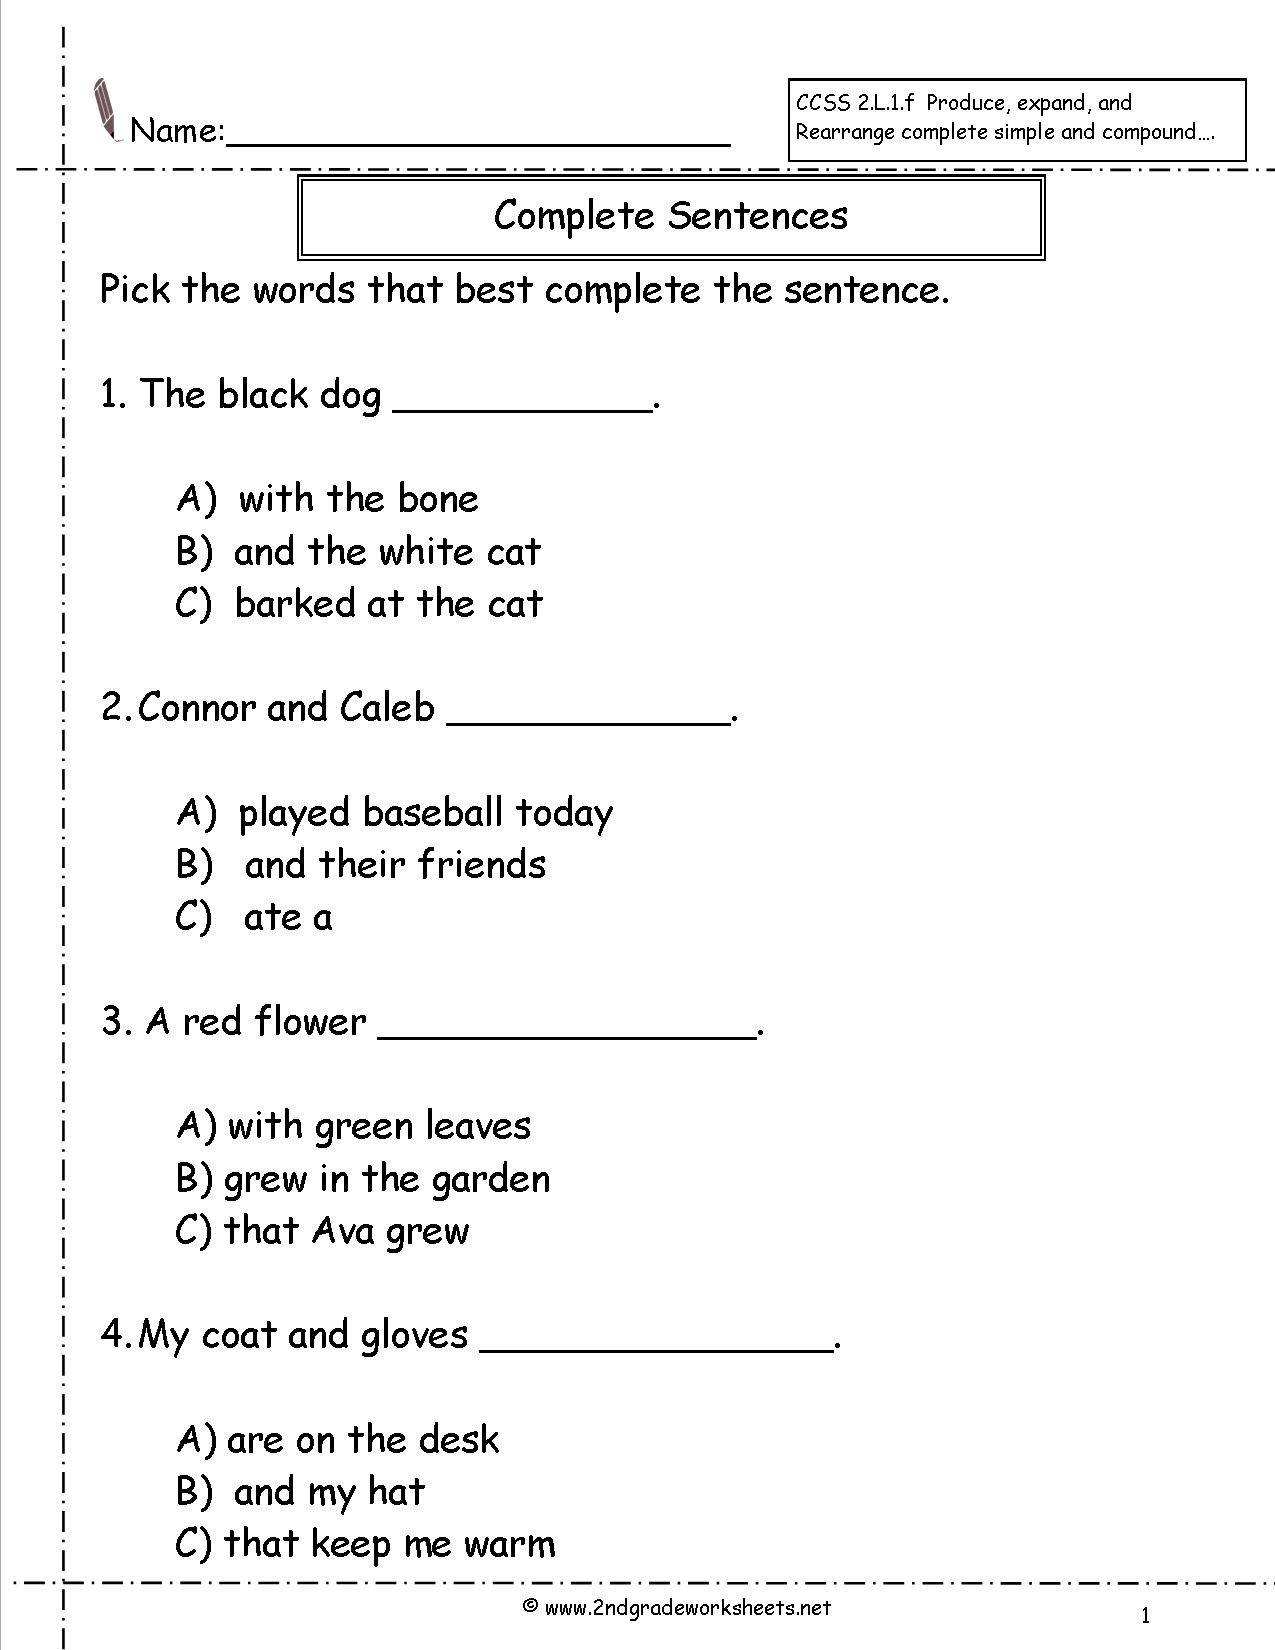 Complete Sentence Worksheets 4th Grade Second Grade Sentences Worksheets Ccss English to Plete